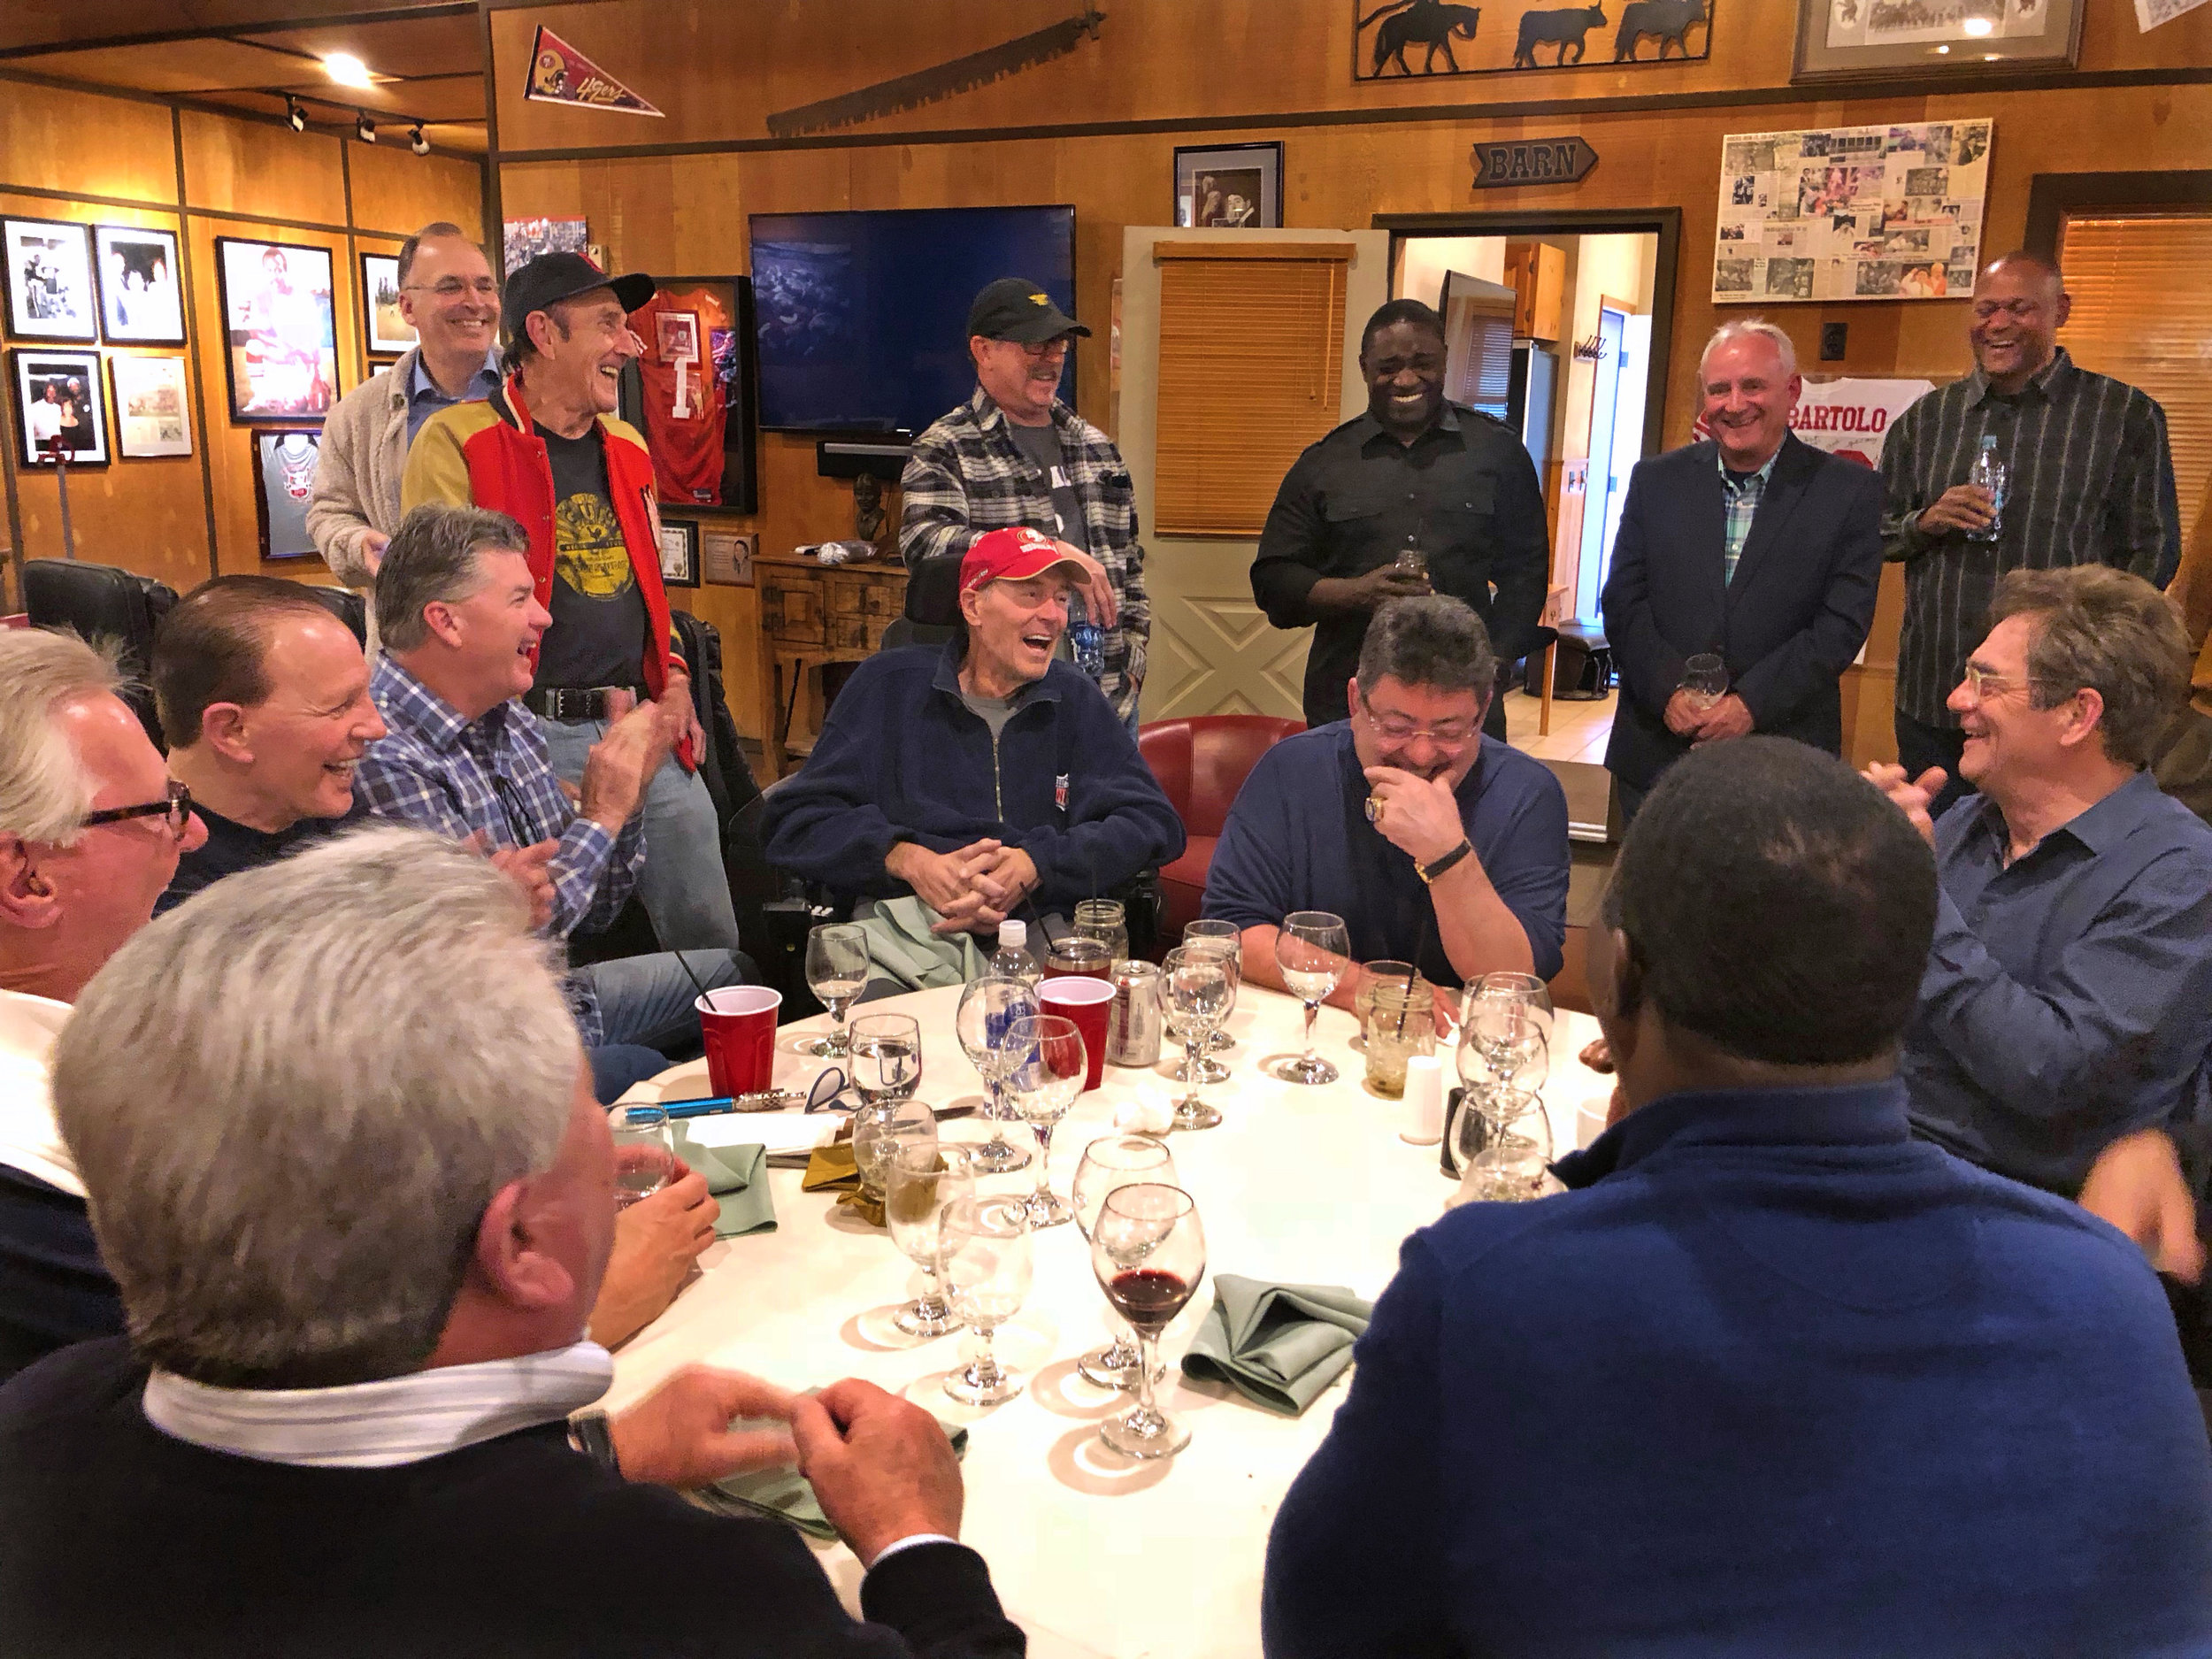 From The Catch to The Barn, DeBartolo throws two-day dream for Dwight Clark and 'family' - Eddie DeBartolo held a reunion on his ranch in Whitefish, Montana, for Dwight Clark, his friends, and former teammates.